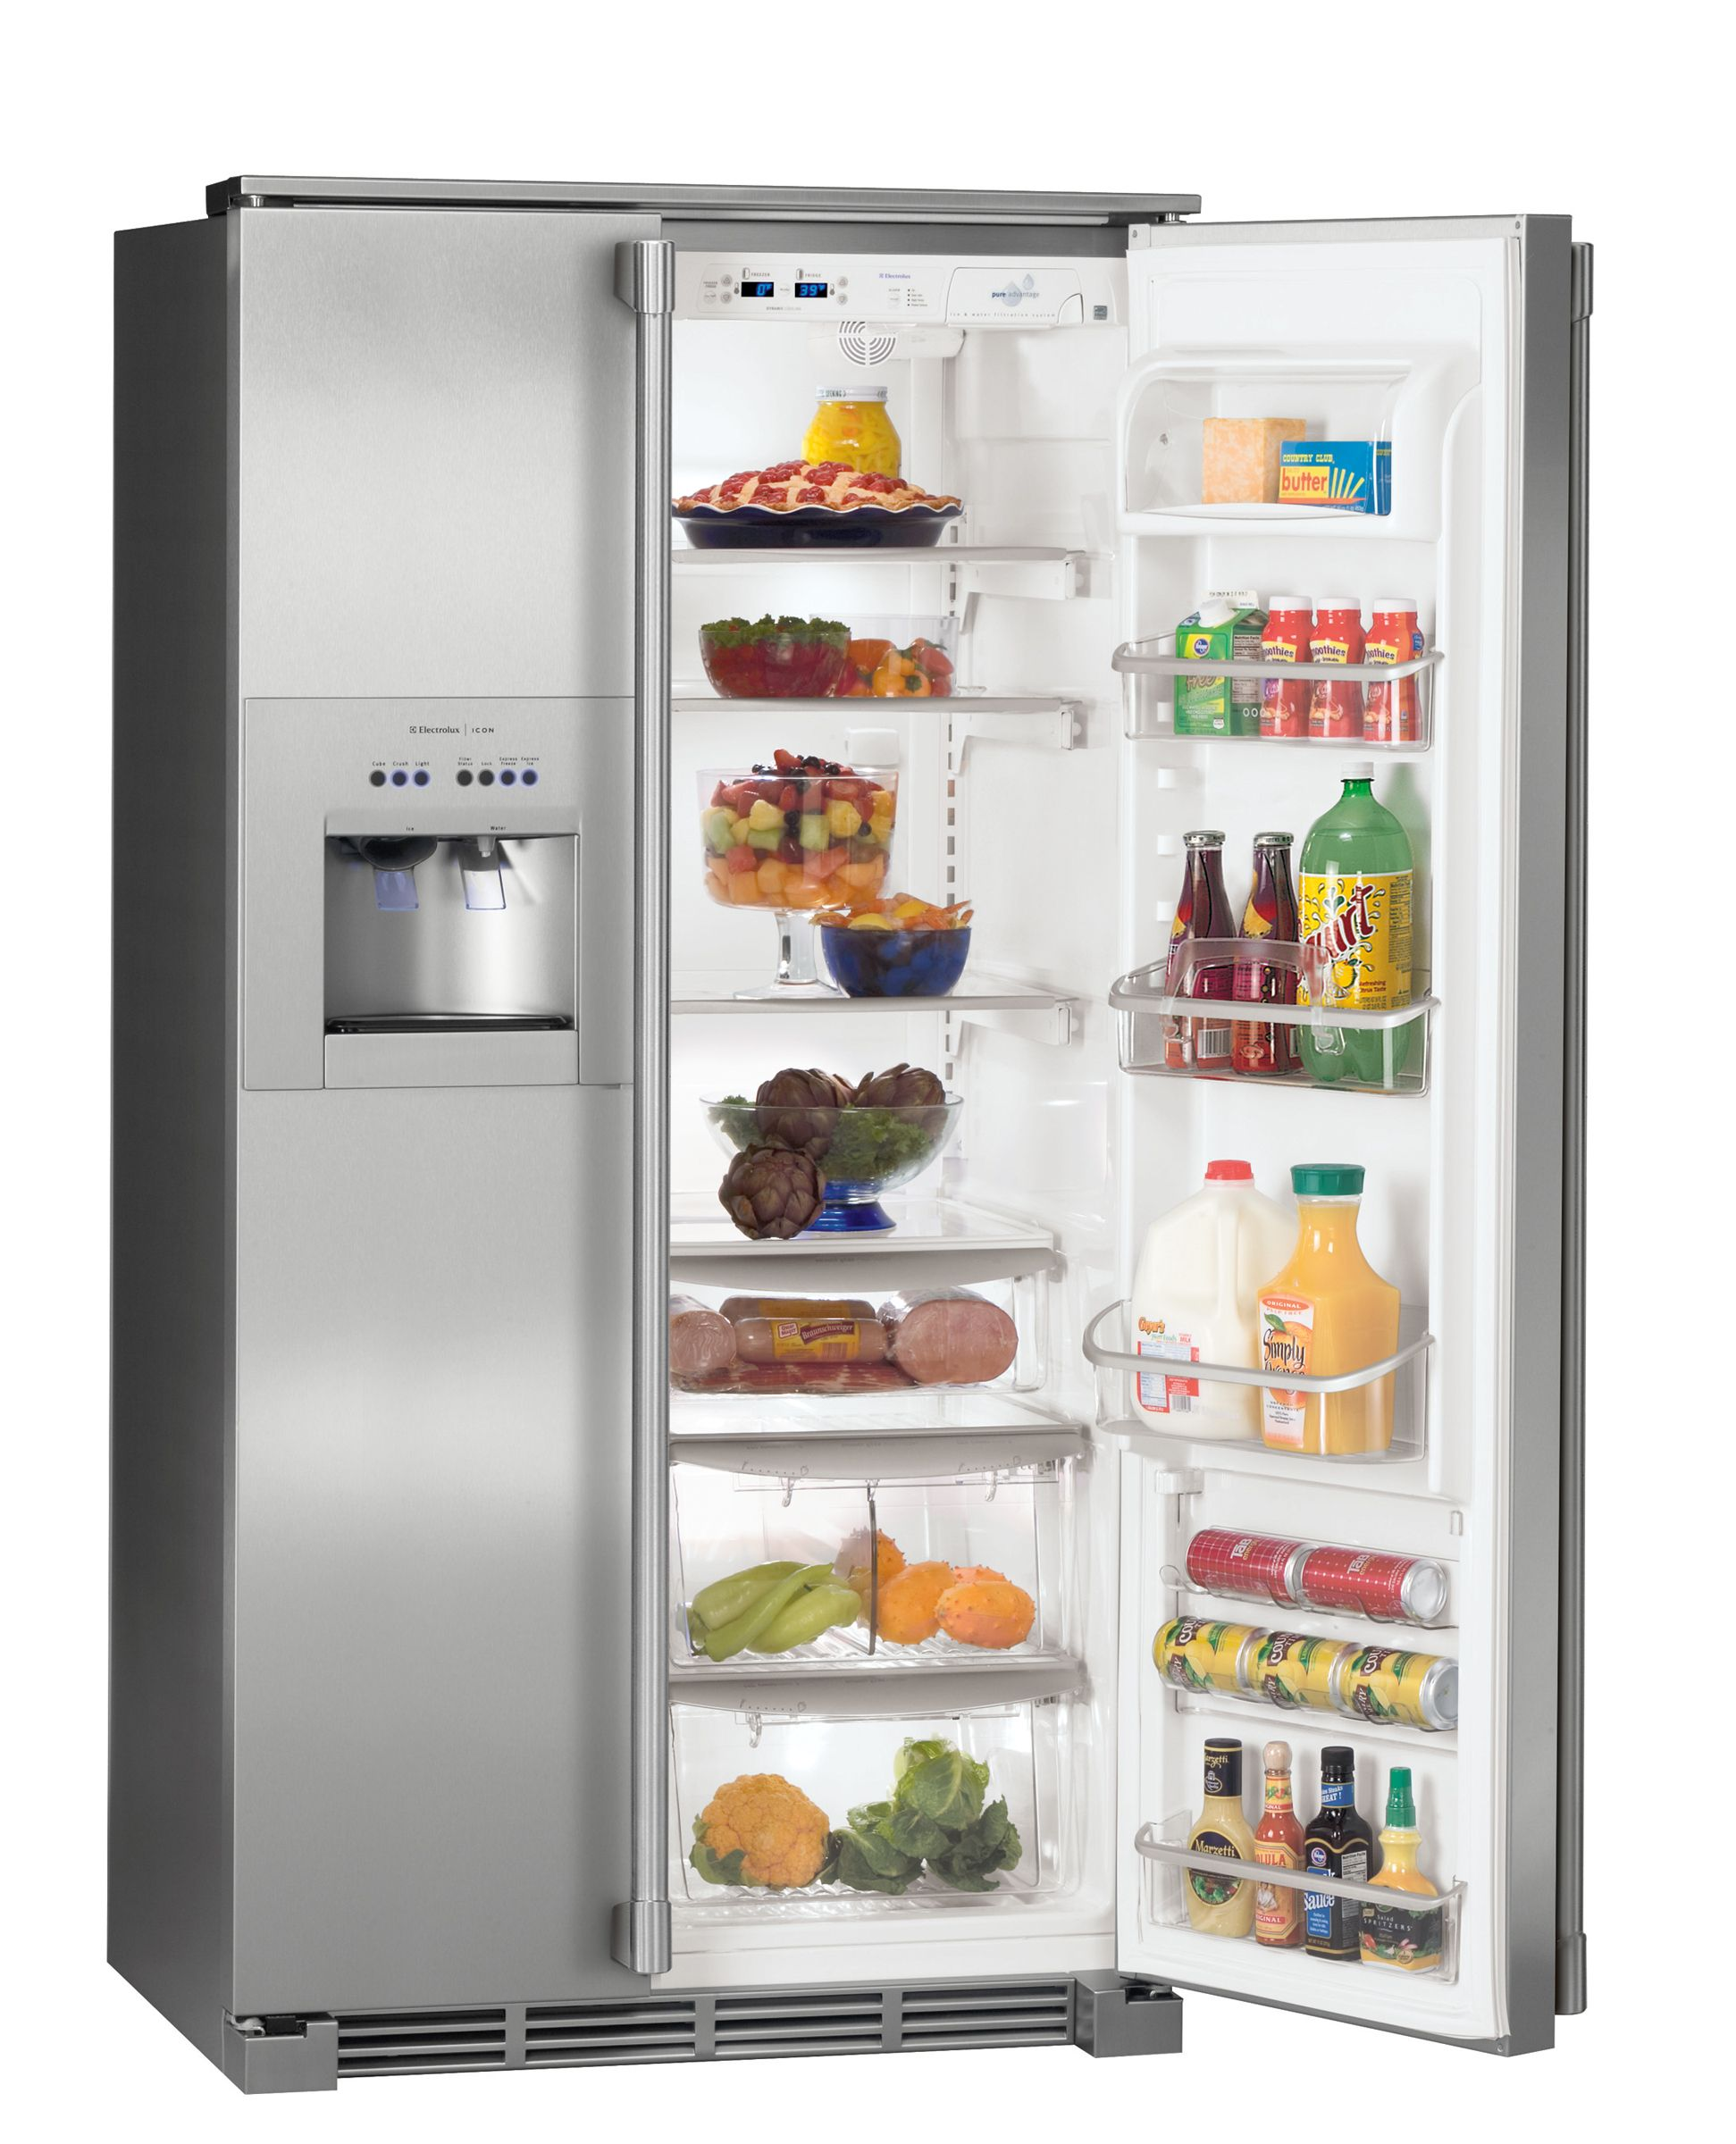 Electrolux ICON 22.6 cu. ft. Side-By-Side Refrigerator - Stainless Steel